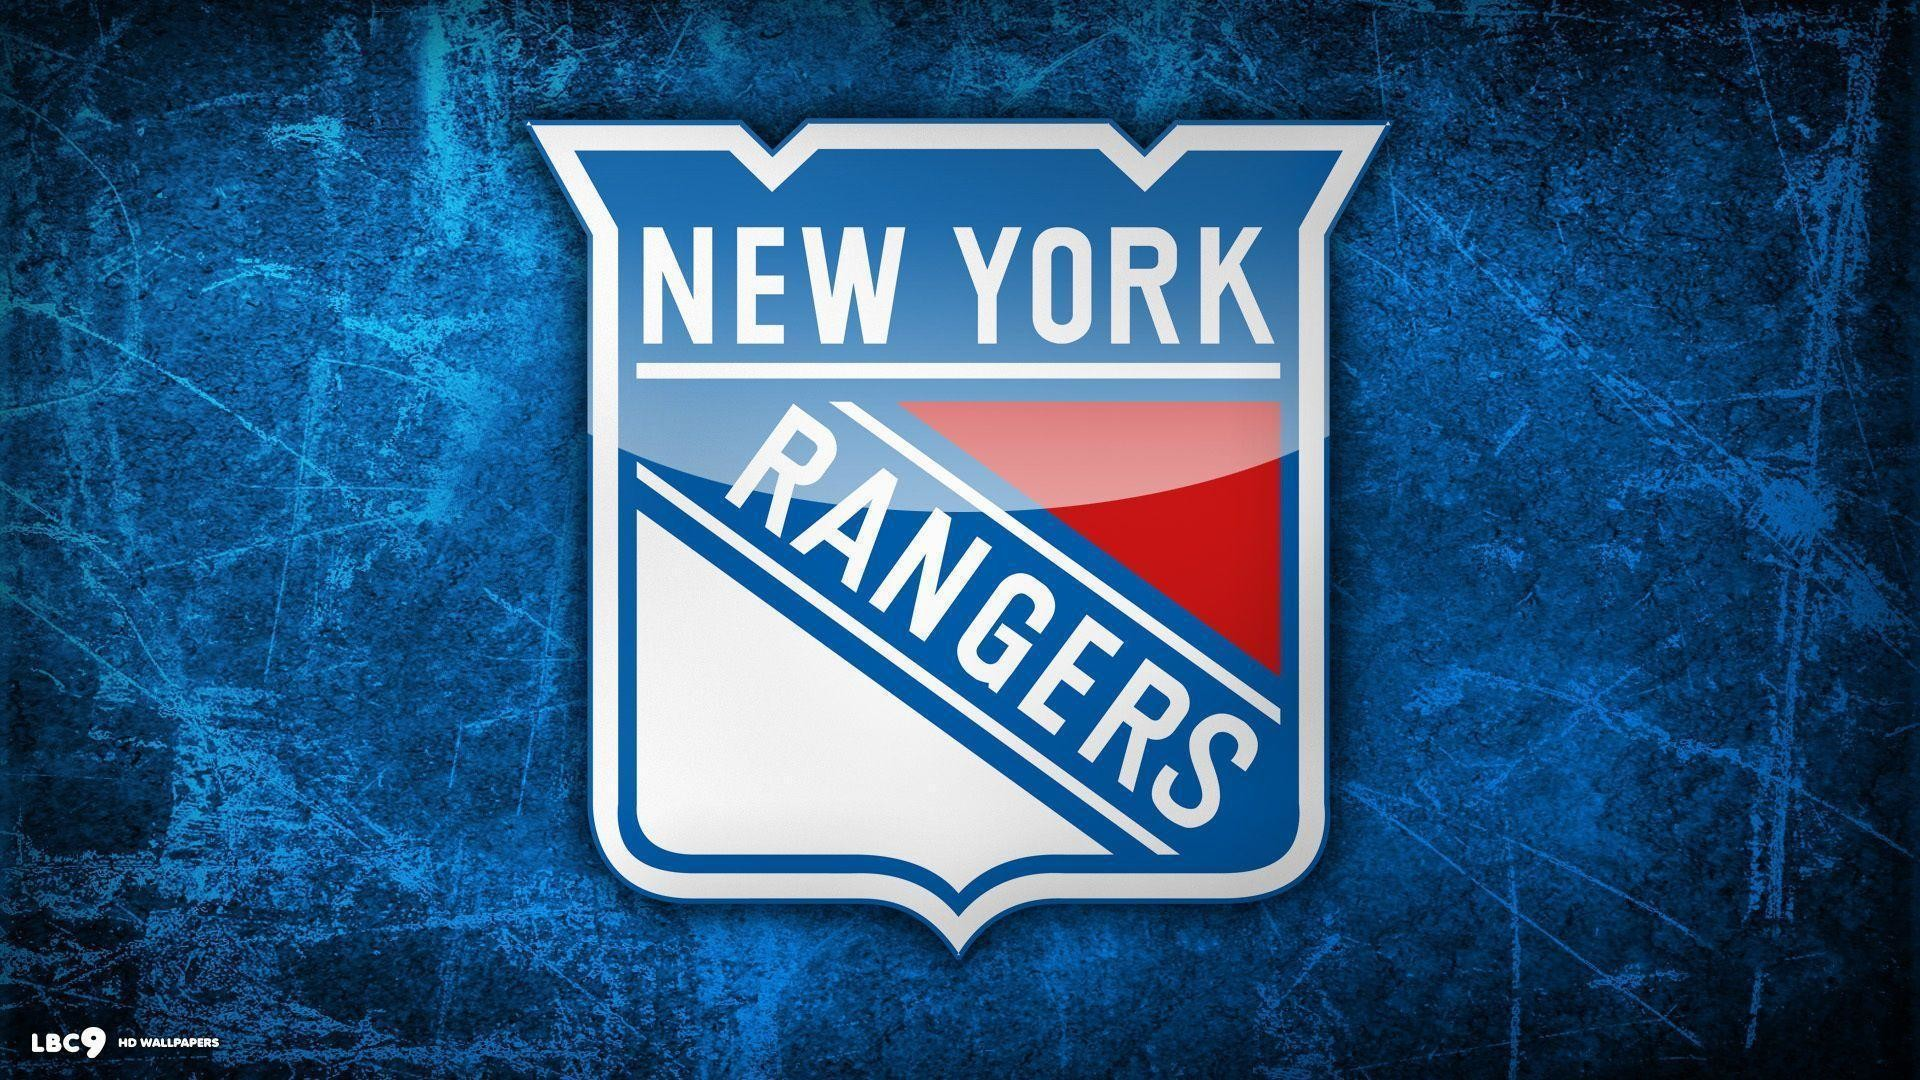 NY Rangers Wallpaper Images (74+ images)